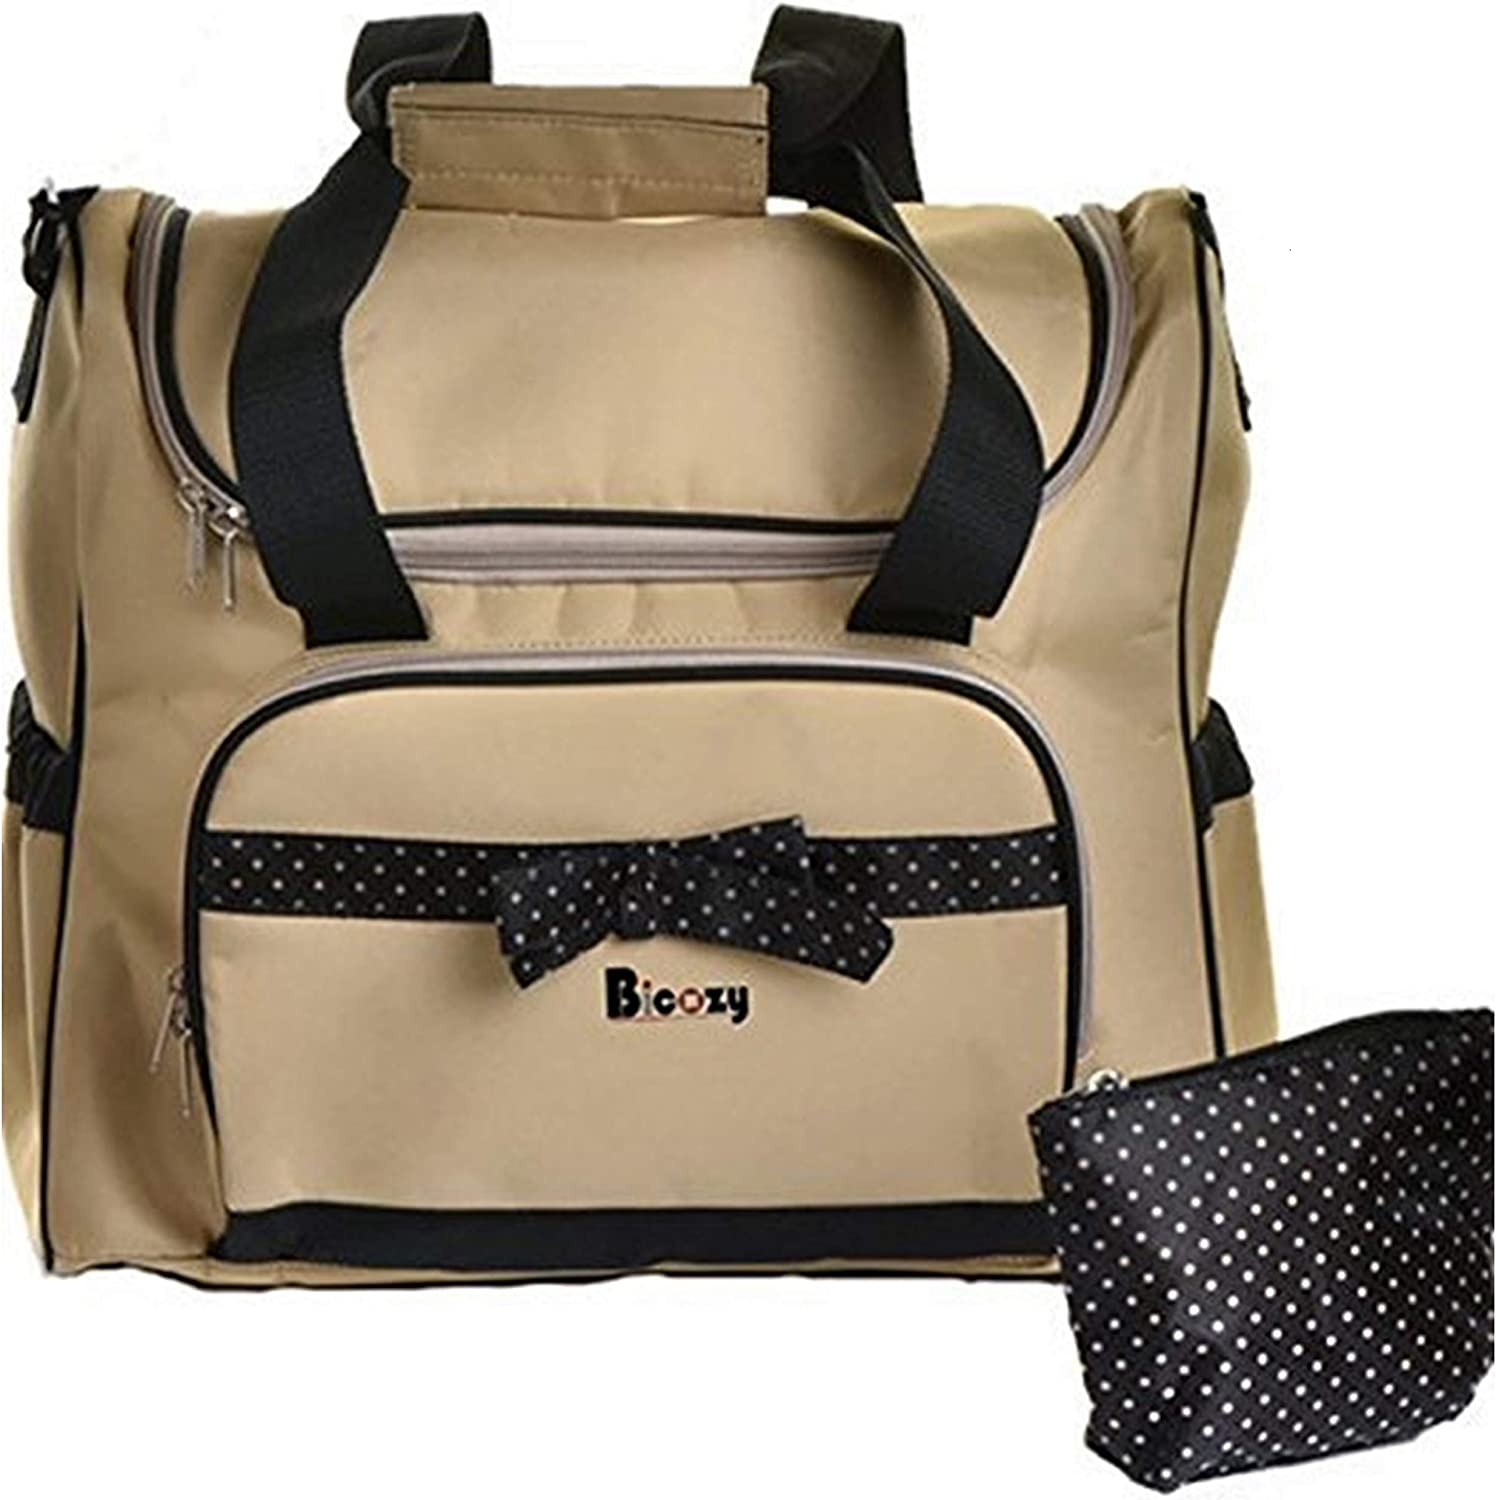 Diaper Tote Bag New Design Neutral Beige Color Changing Mat Roomy Waterproof Stylish and Durable Mom Bag Cute for Baby Boys & Girls